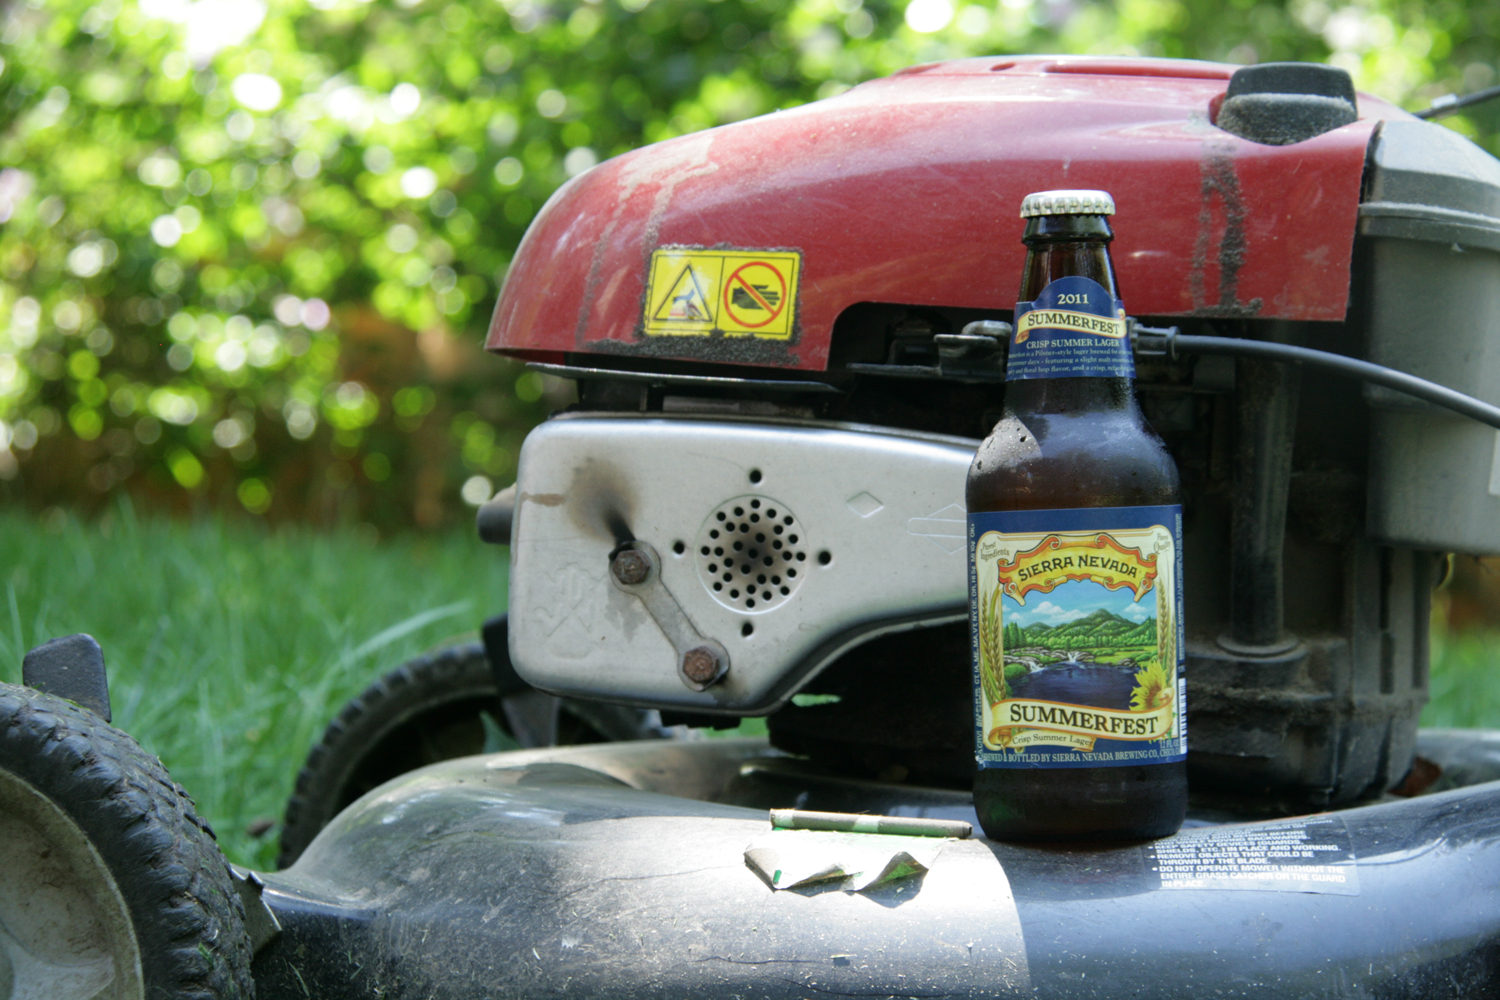 Drink Summerfest beer this summer from Sierra Nevada Brewing.